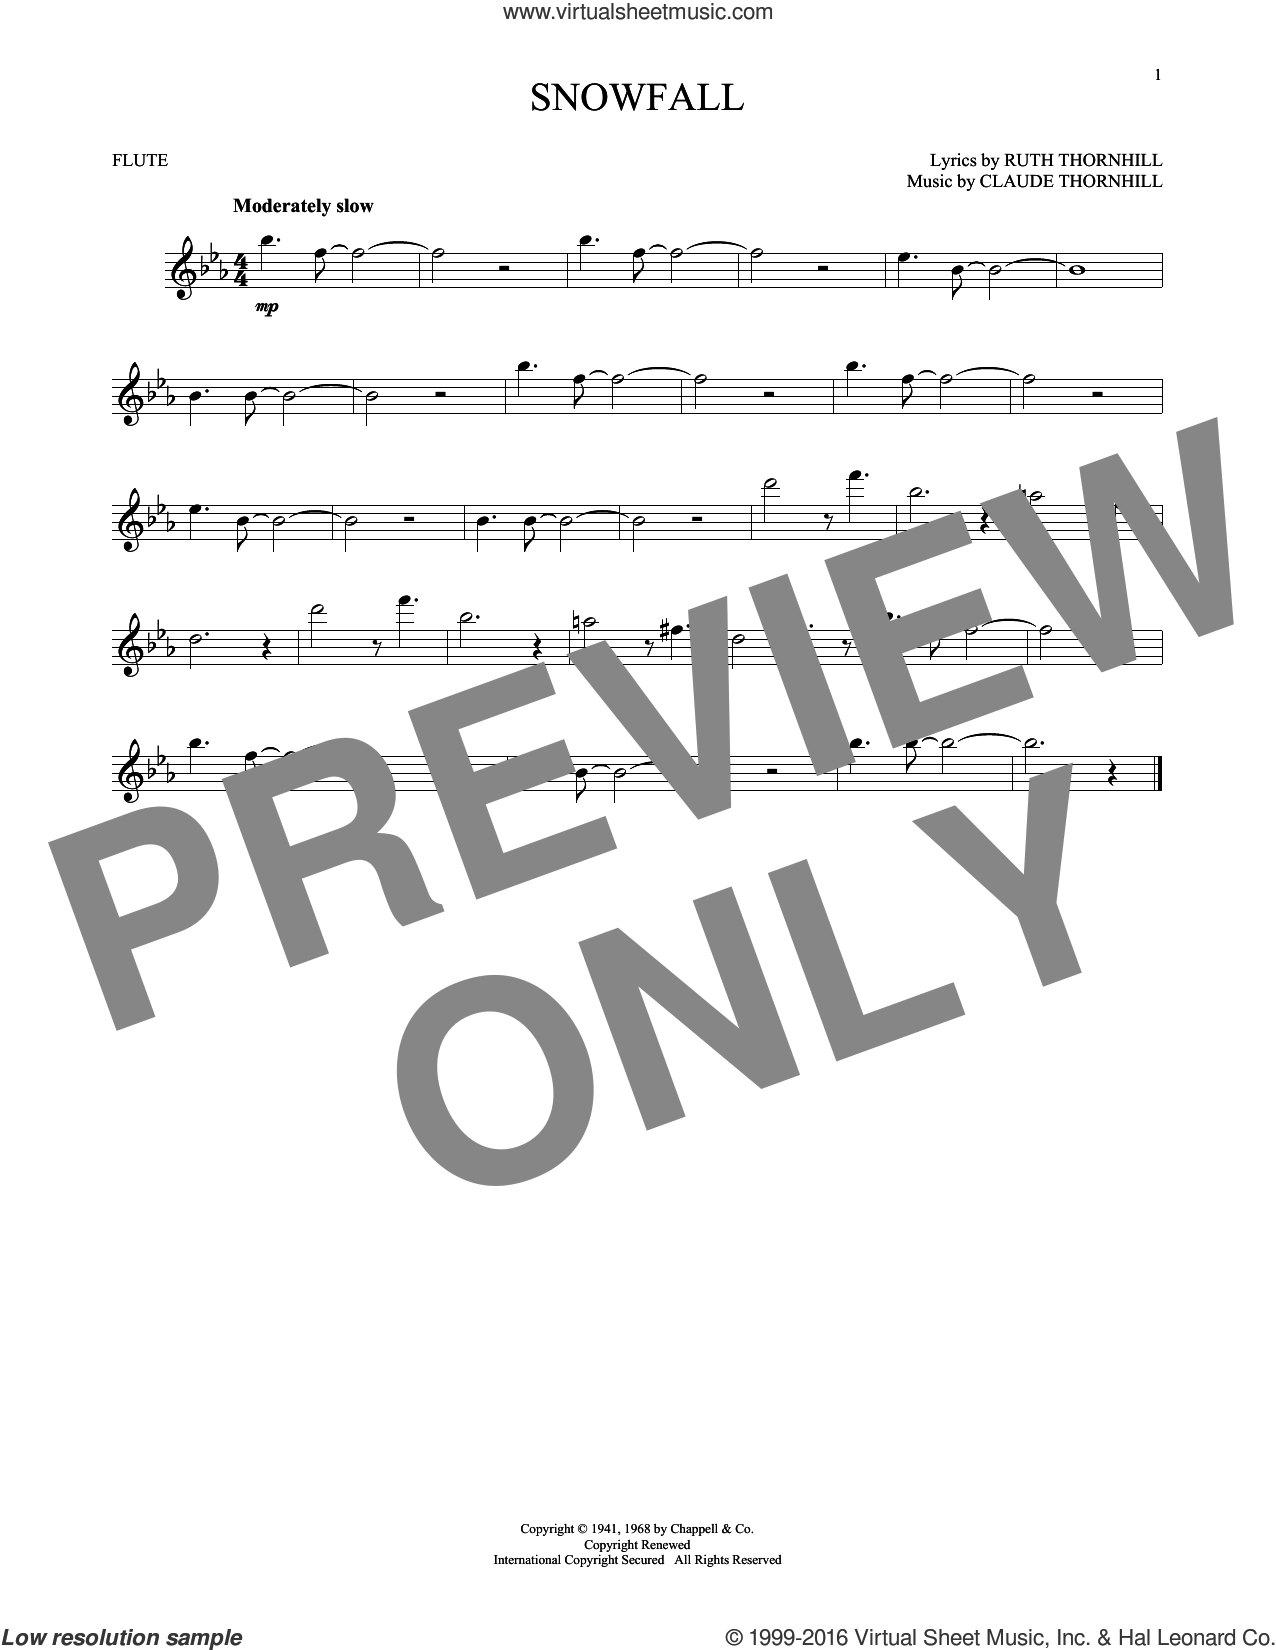 Snowfall sheet music for flute solo by Claude Thornhill, Tony Bennett, Claude & Ruth Thornhill and Ruth Thornhill, intermediate skill level